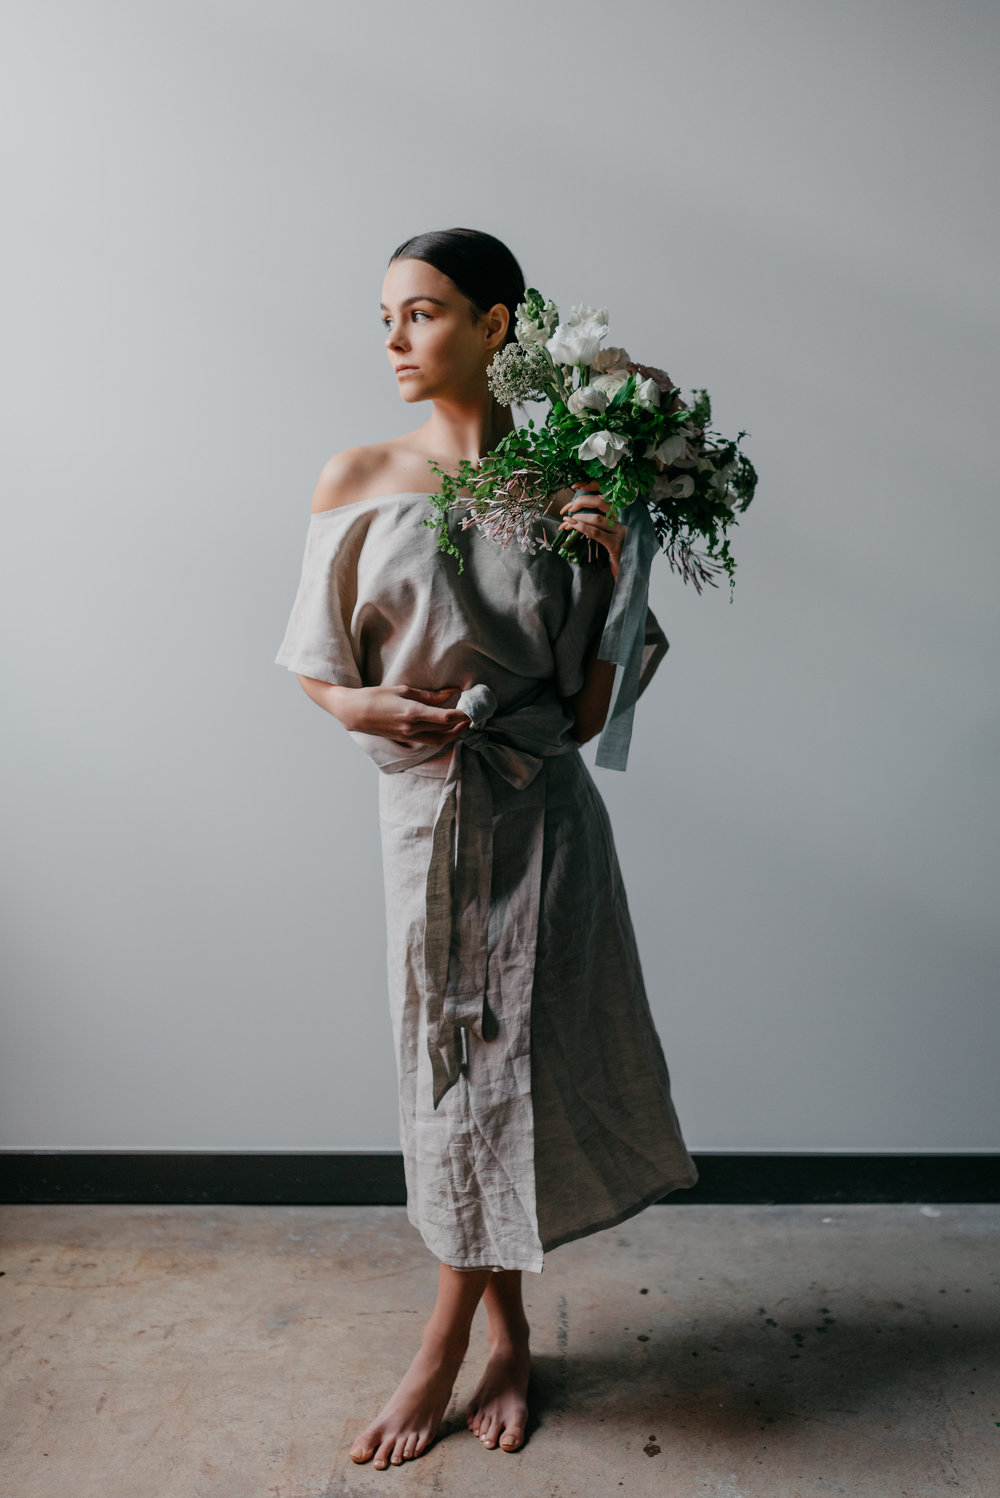 Standing in Linen and Light with Flowers